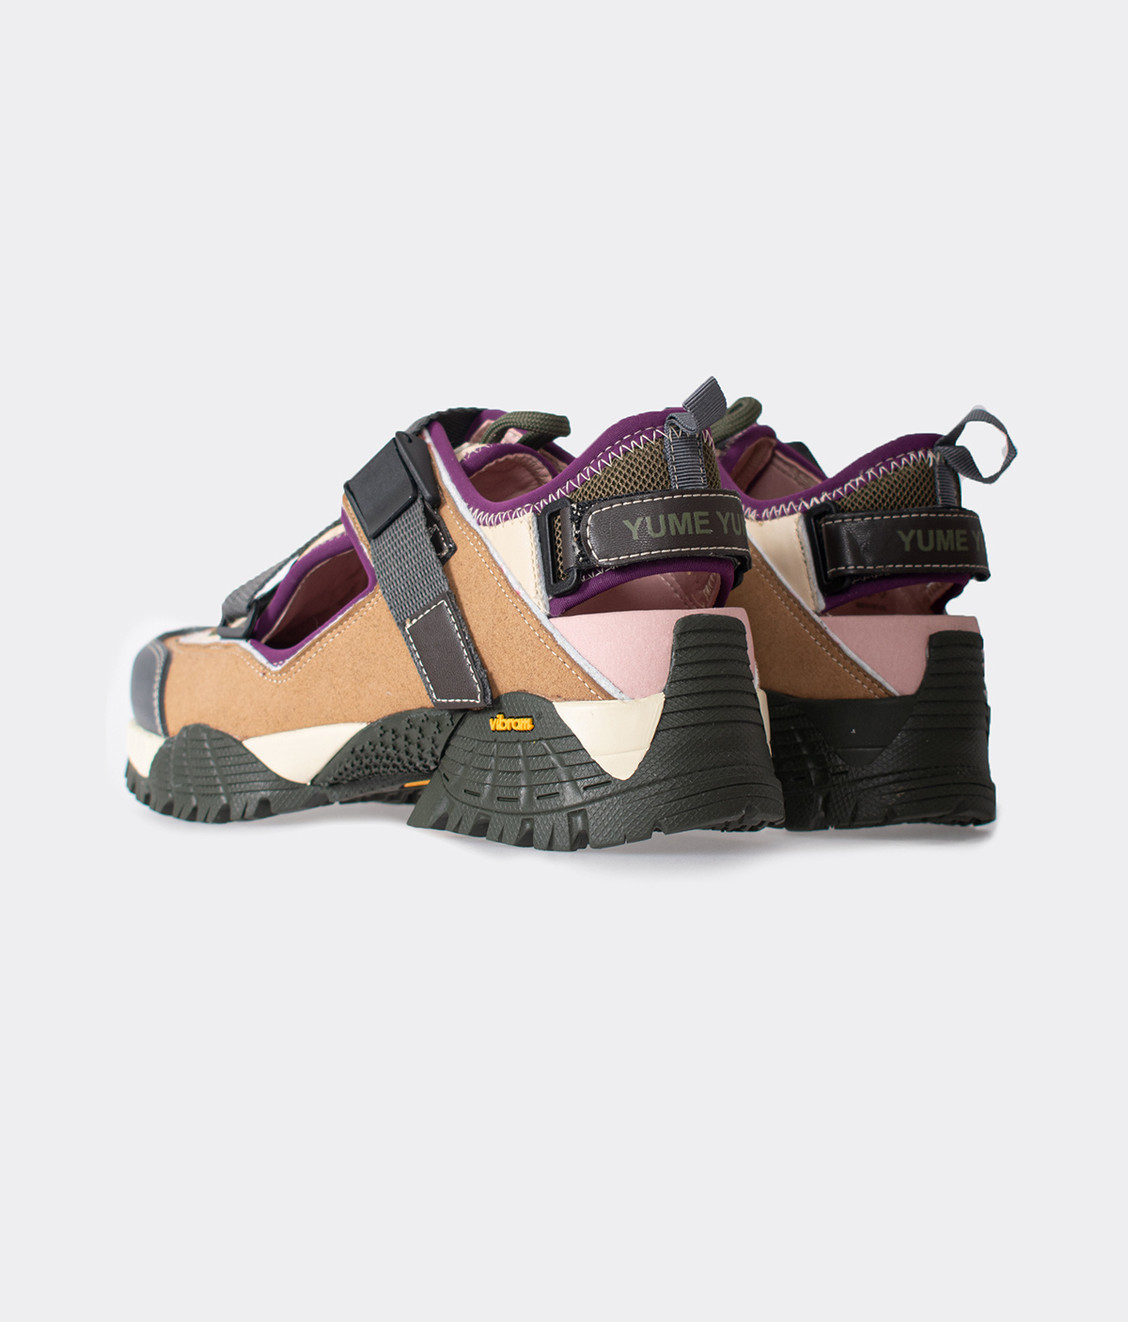 Yume Yume Yume Hiking Sandal Brown Forest Night